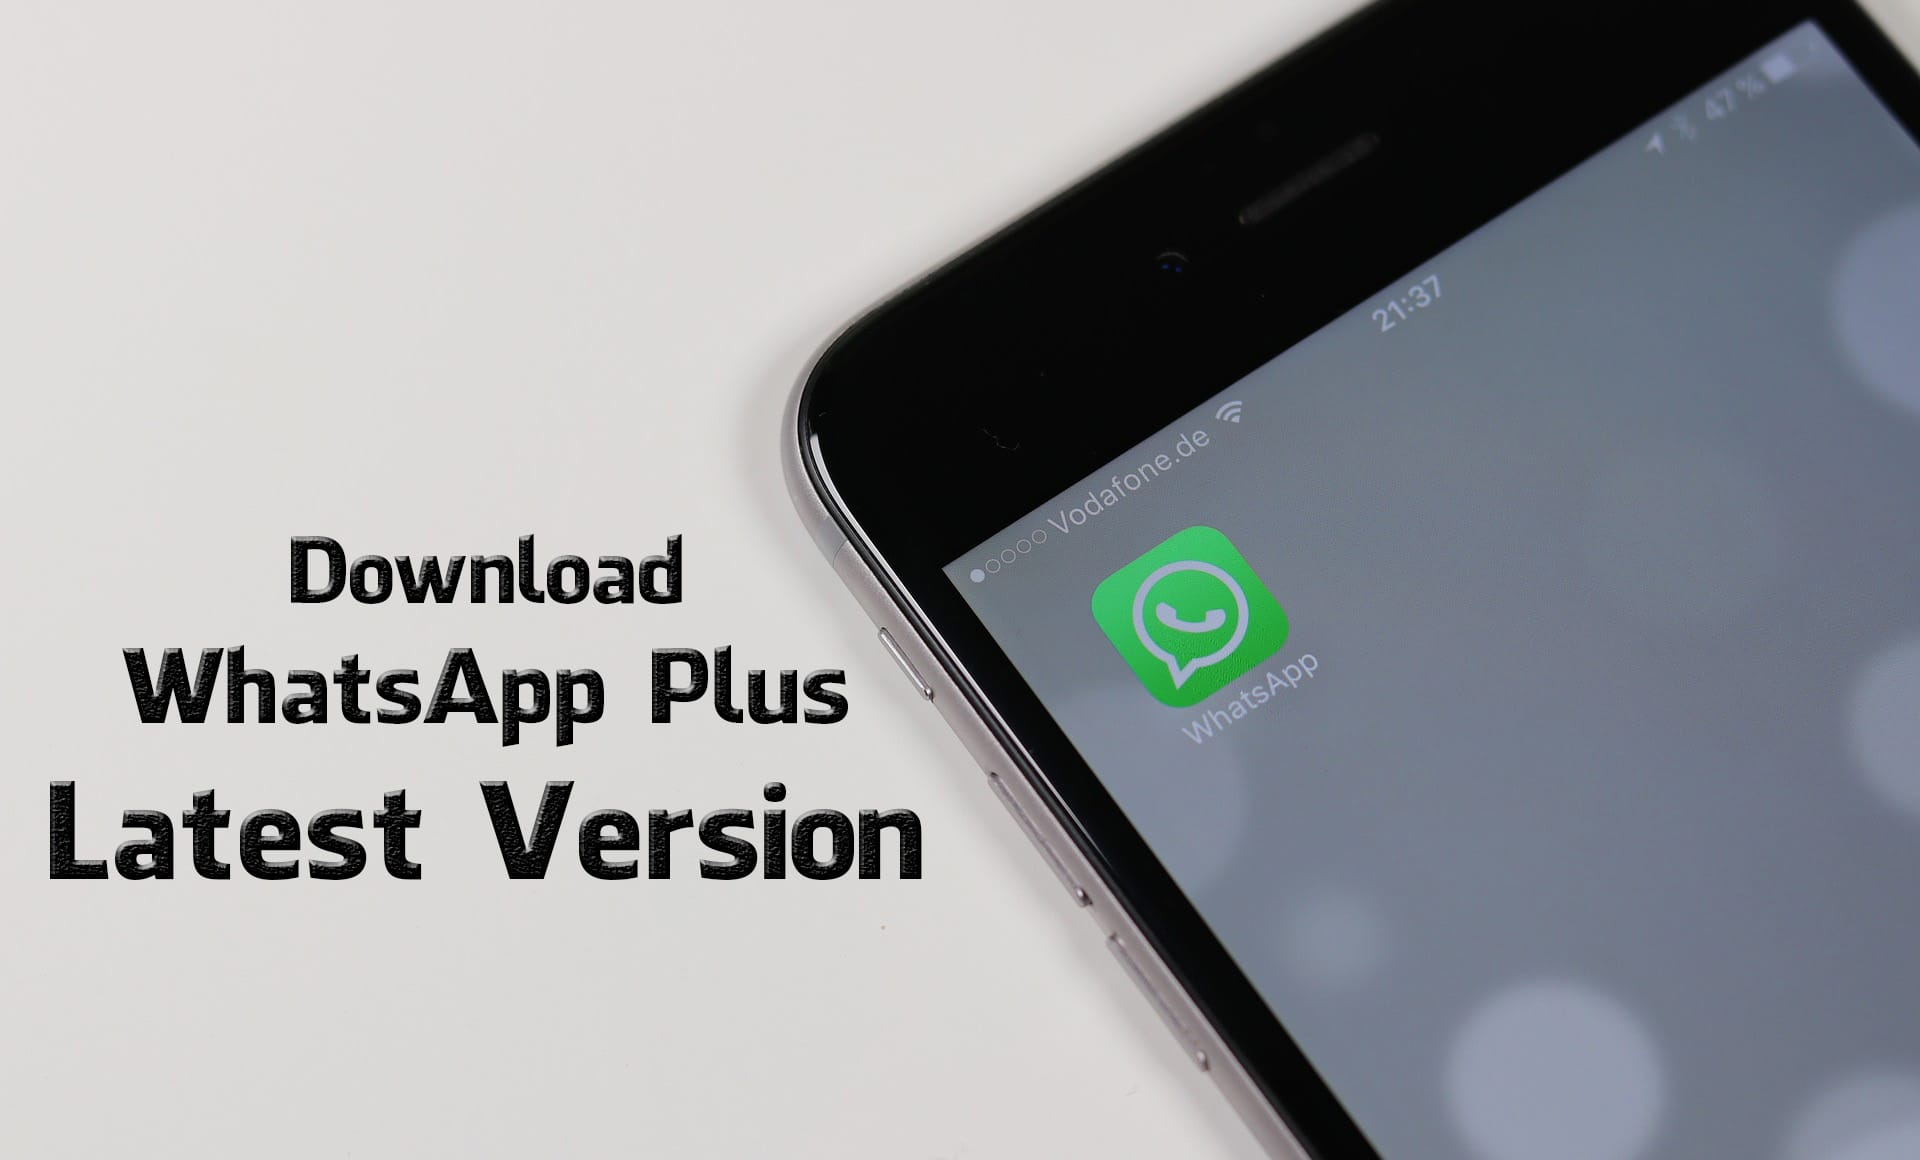 Download WhatsApp Plus Latest Version